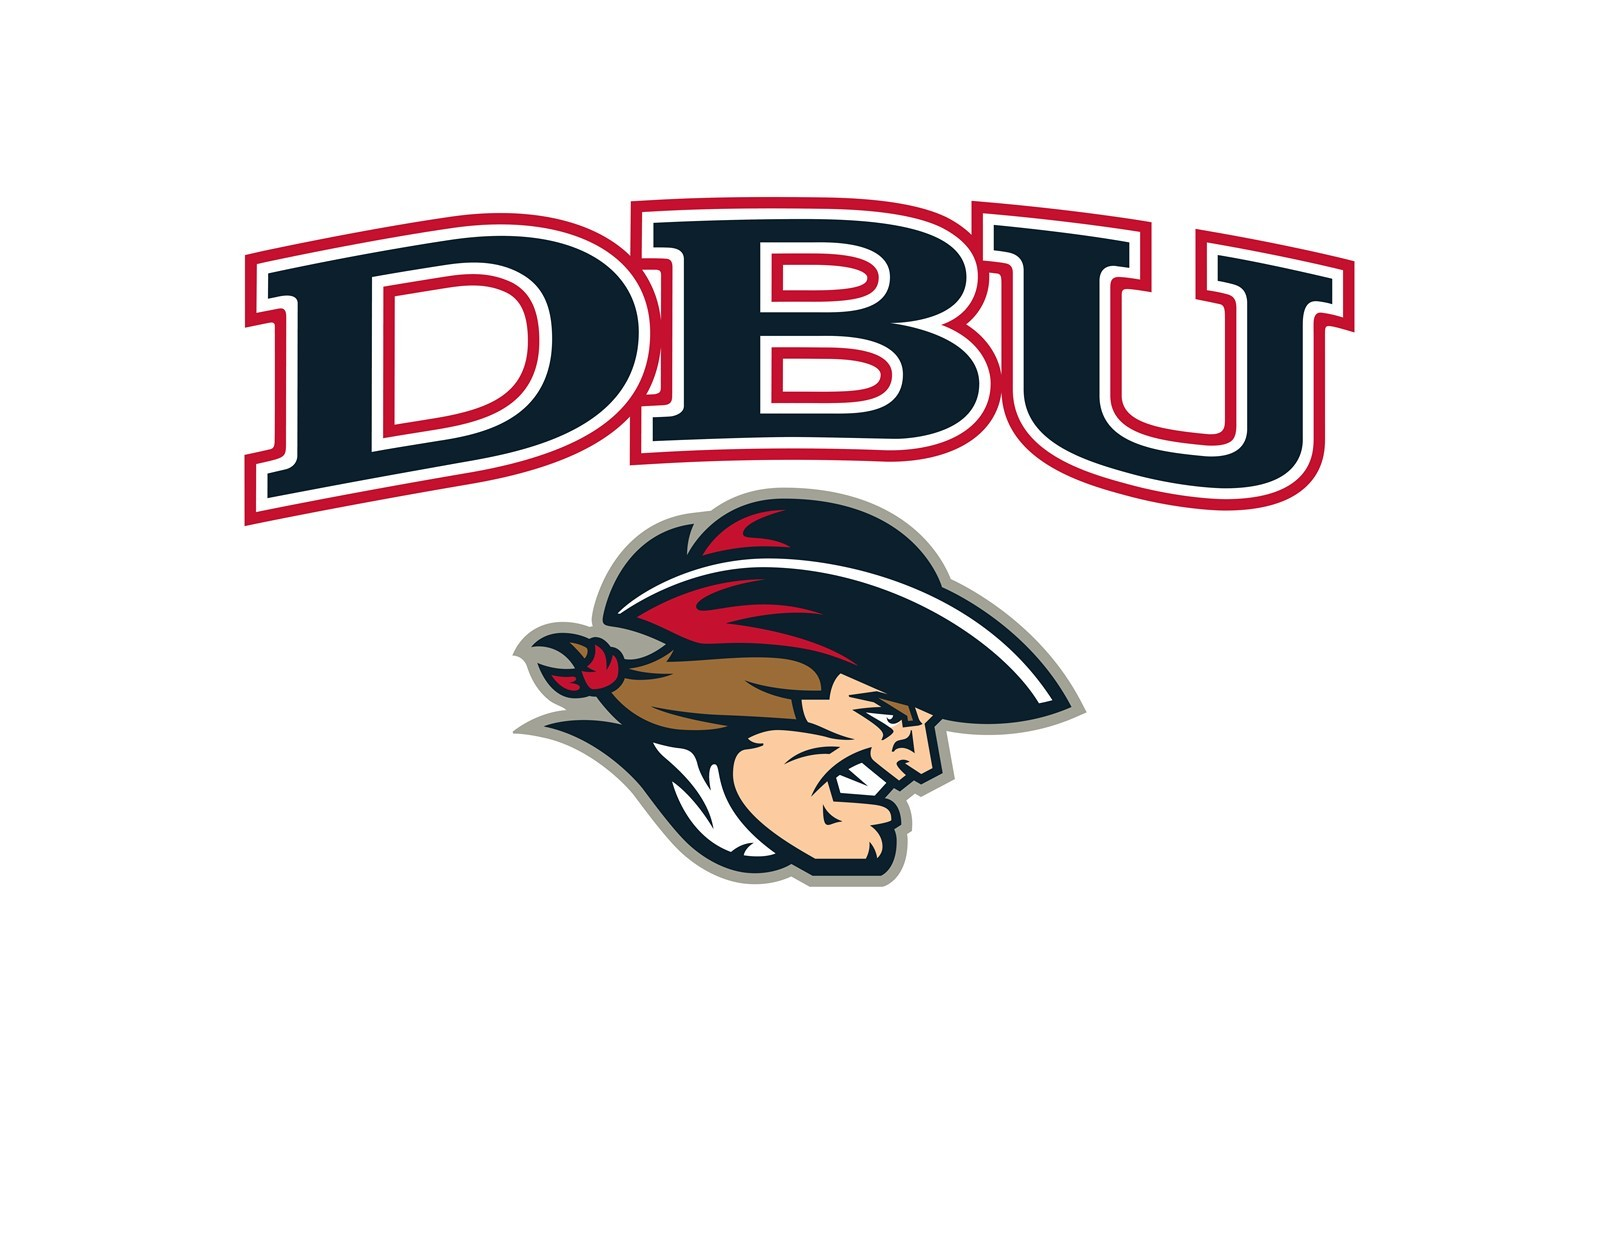 MD3 Dallas Baptist University